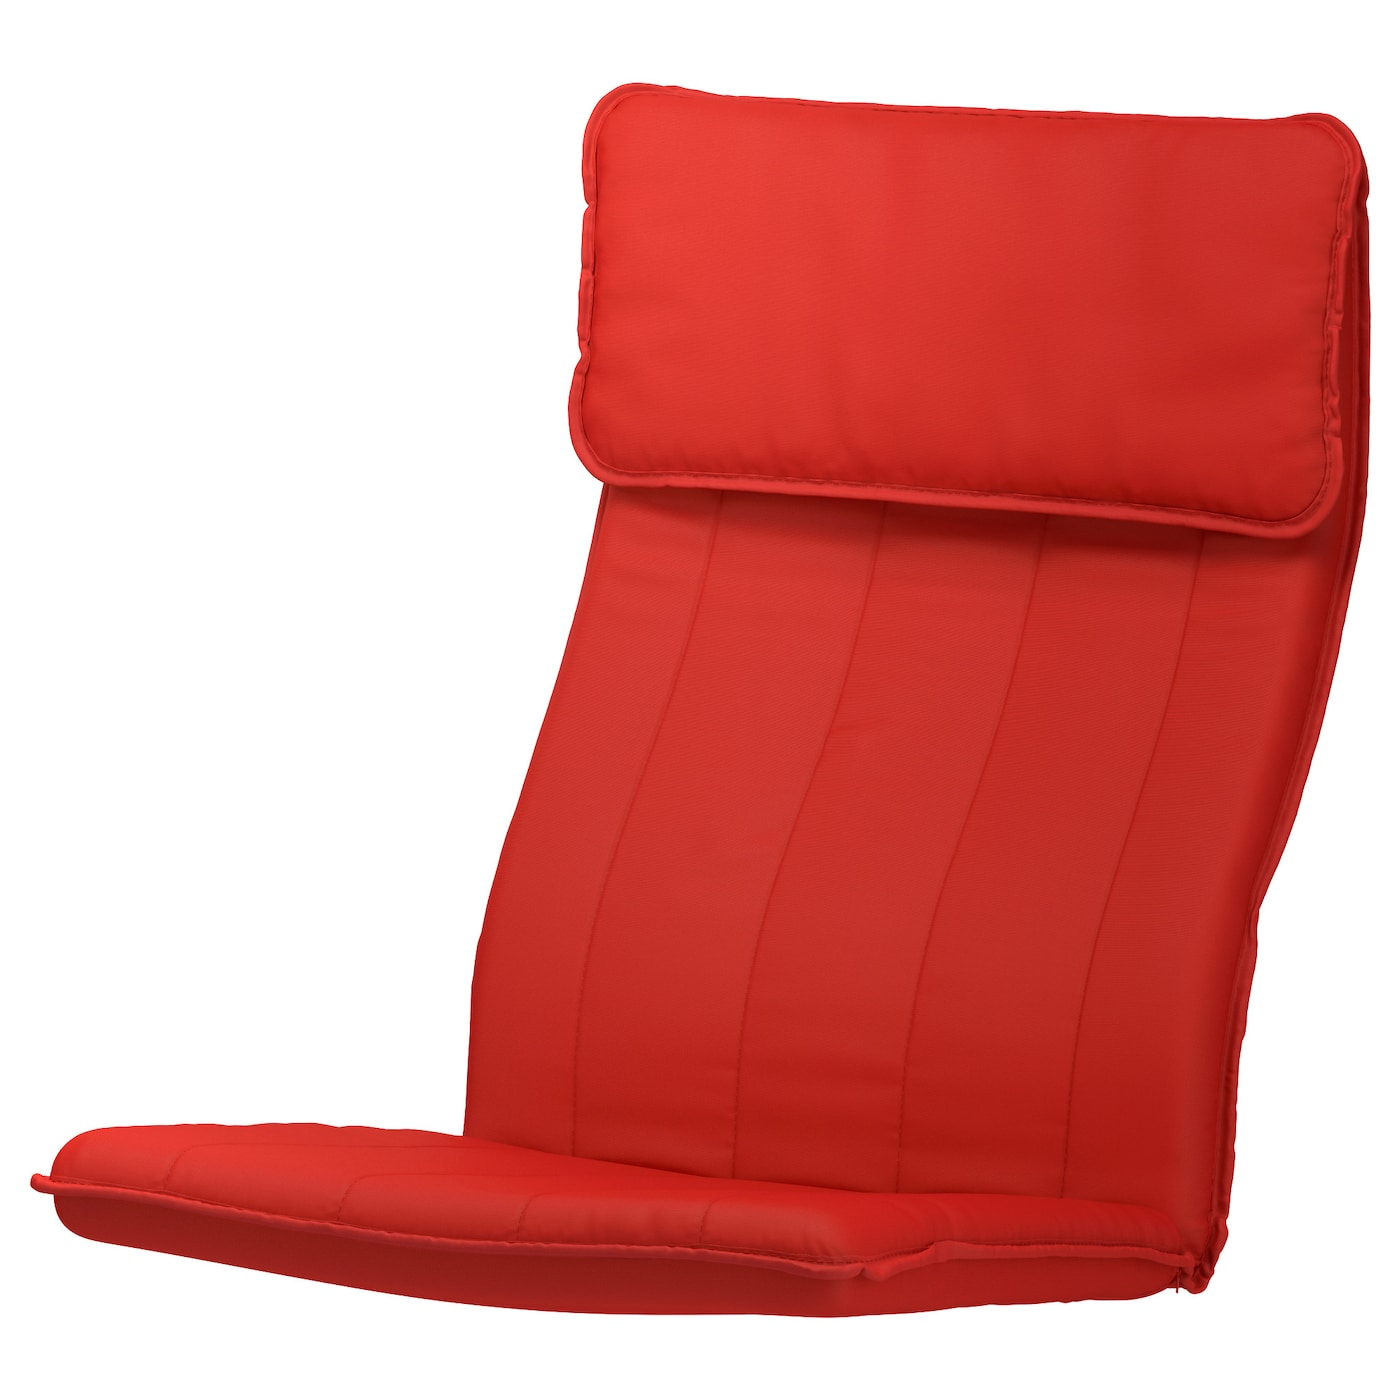 Ikea Pello Sessel PoÄng Armchair Cushion Ransta Red Ikea